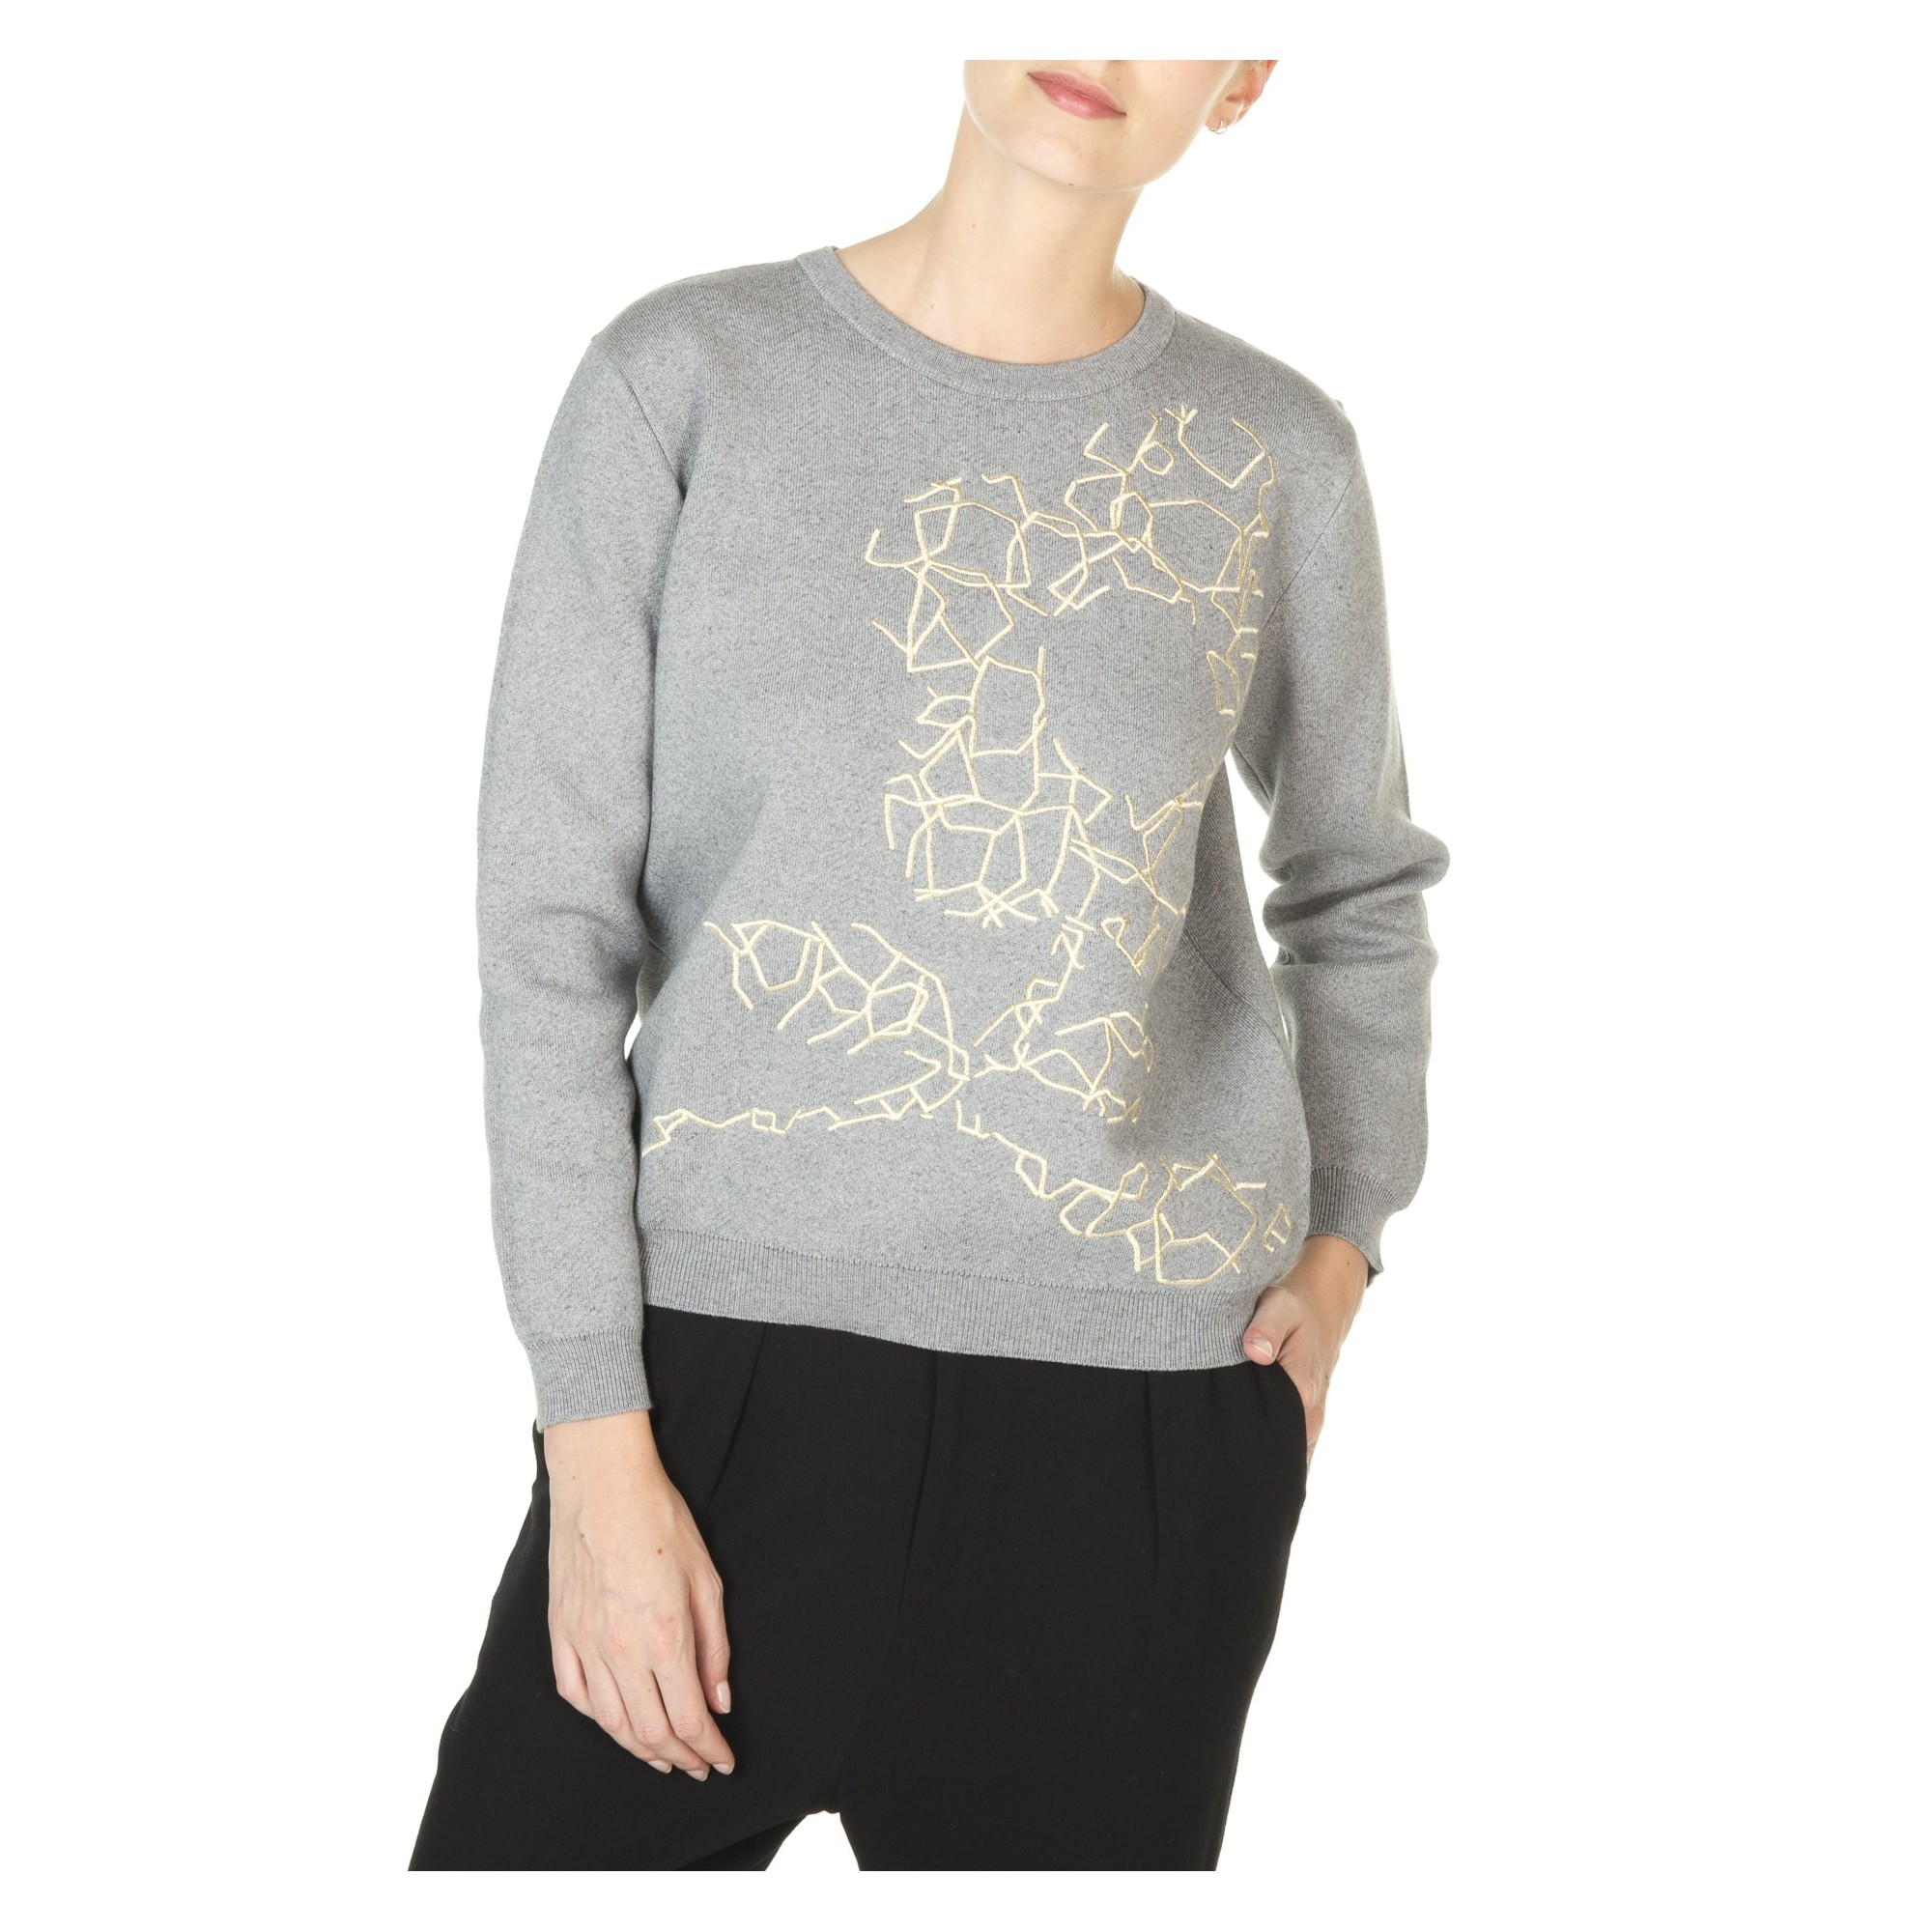 a869e57a61 logo flower sweater made from cotton and cashmere women